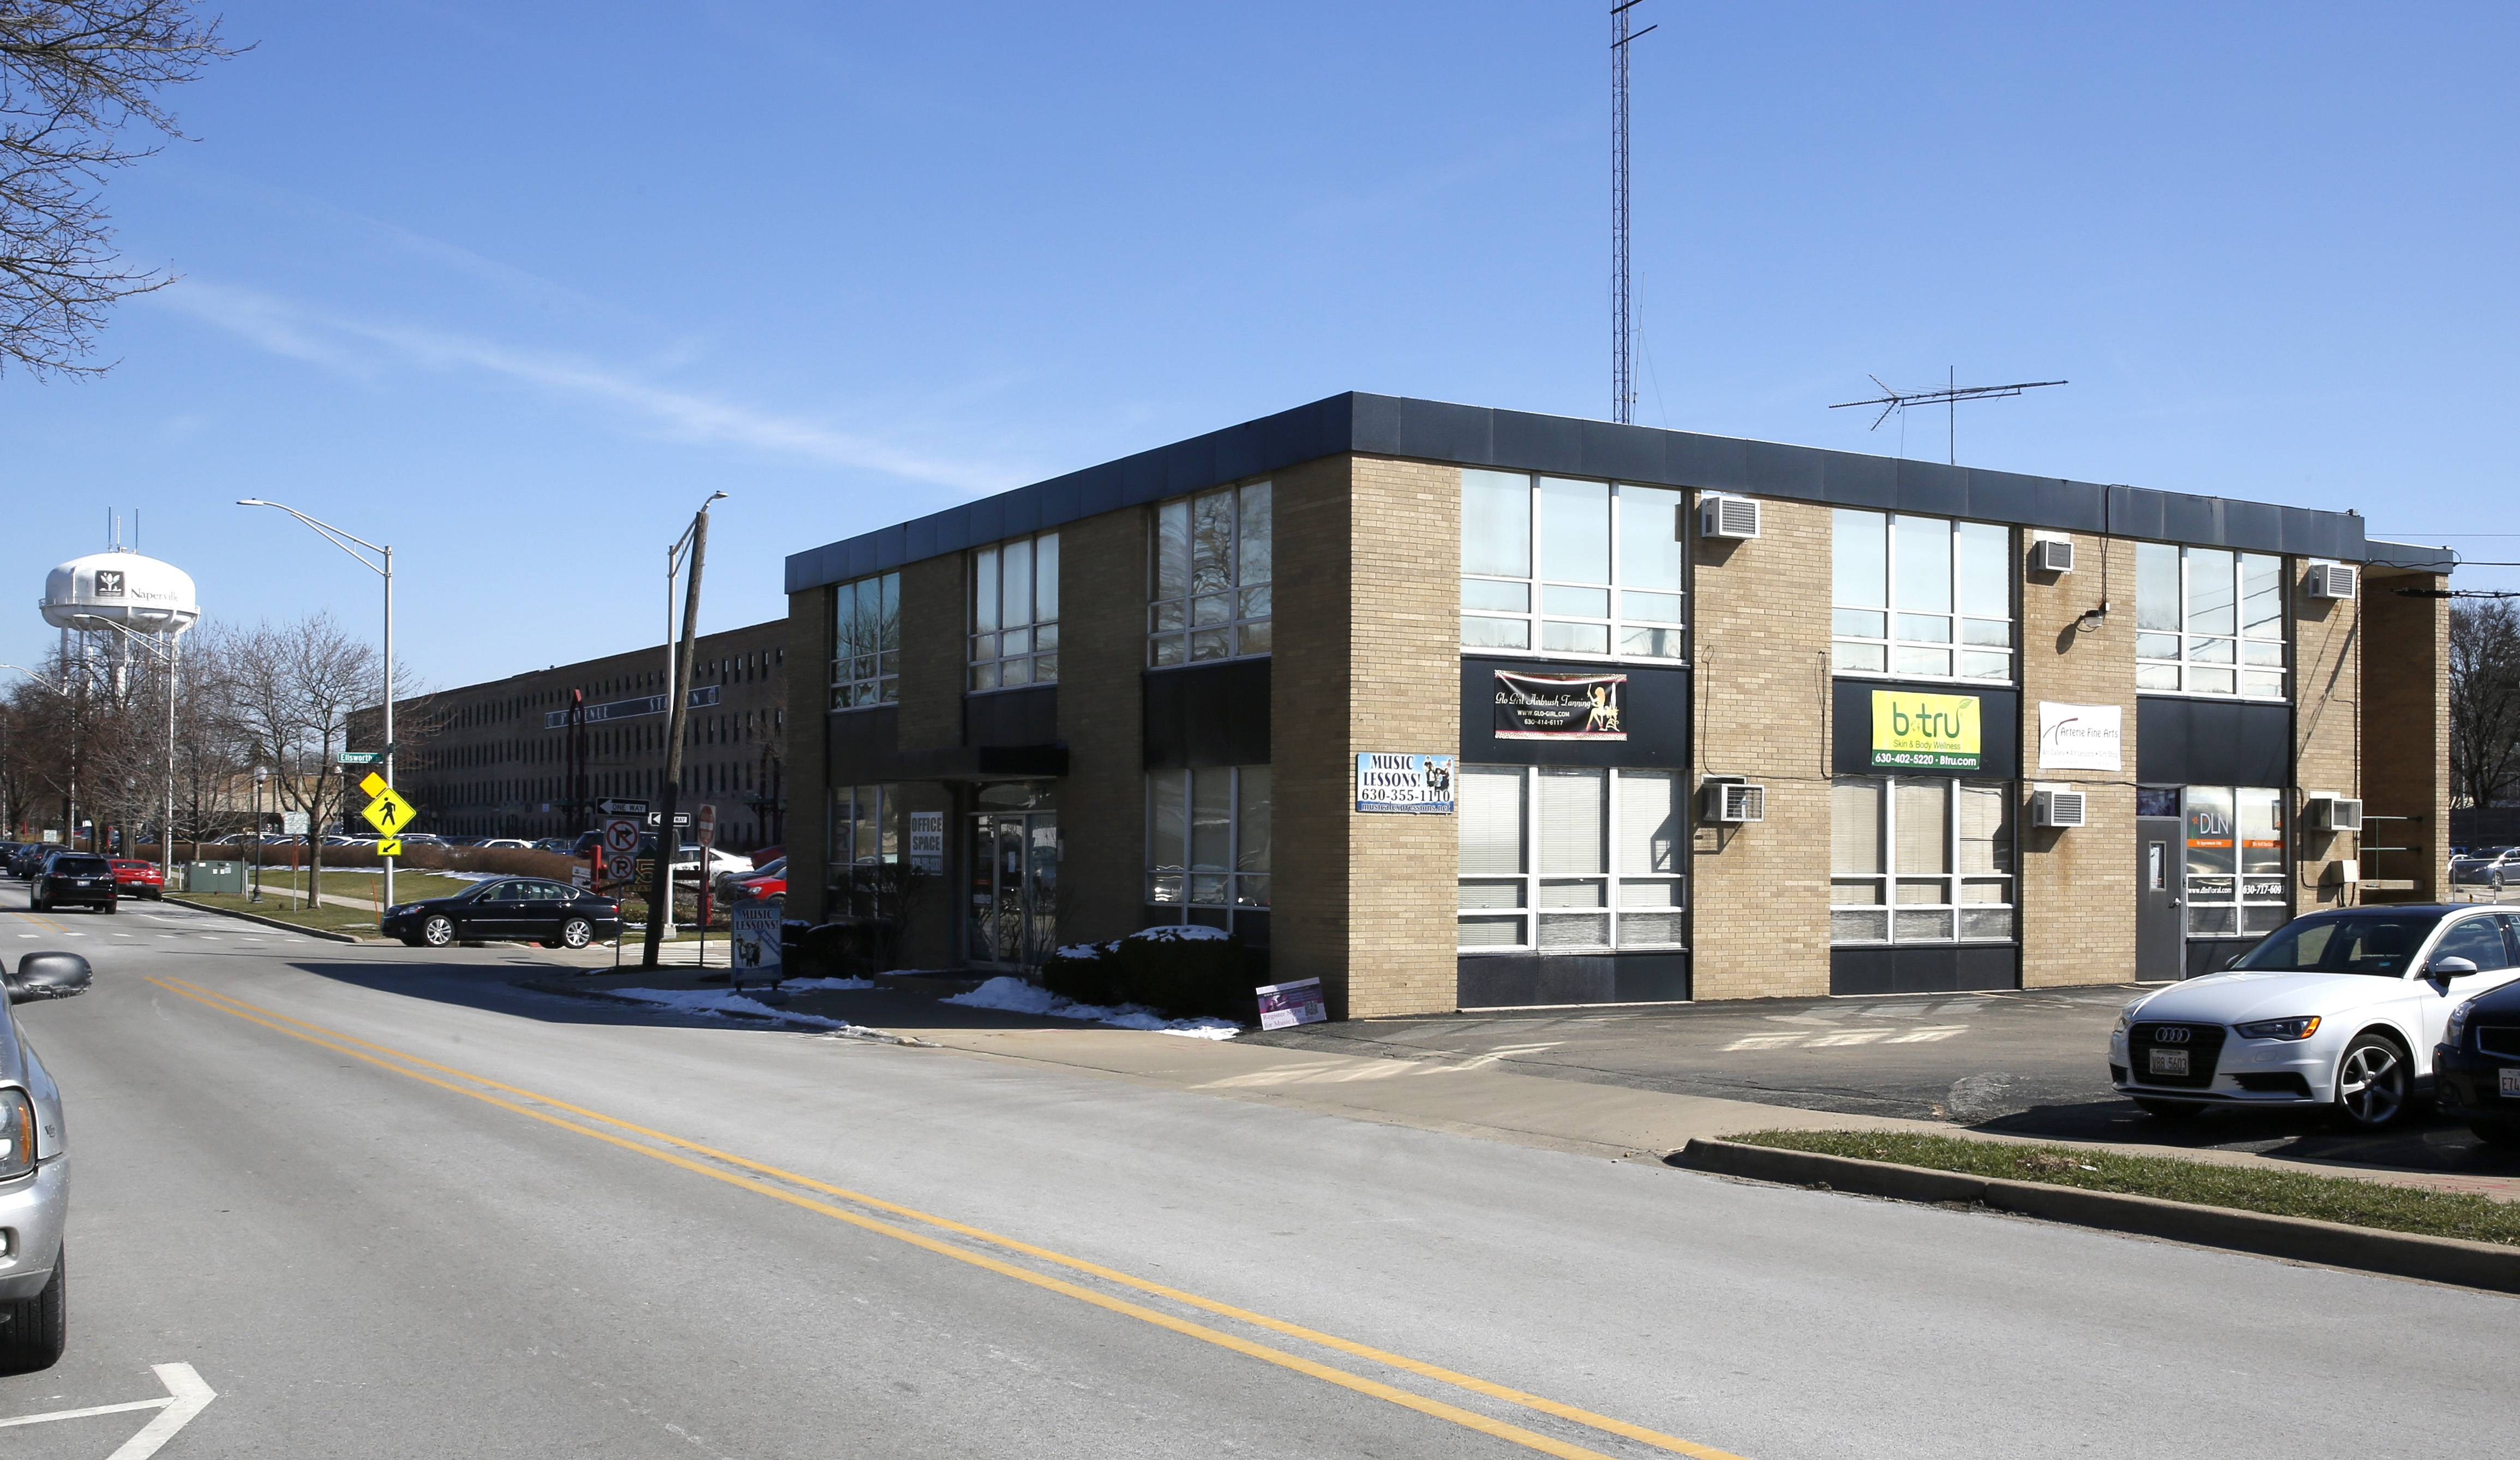 This small business building along 5th Avenue just east of Washington Street in Naperville is one of several city-owned or leased sites totaling 13 acres that could be remade if the city creates a plan and approves a developer to take on the project.